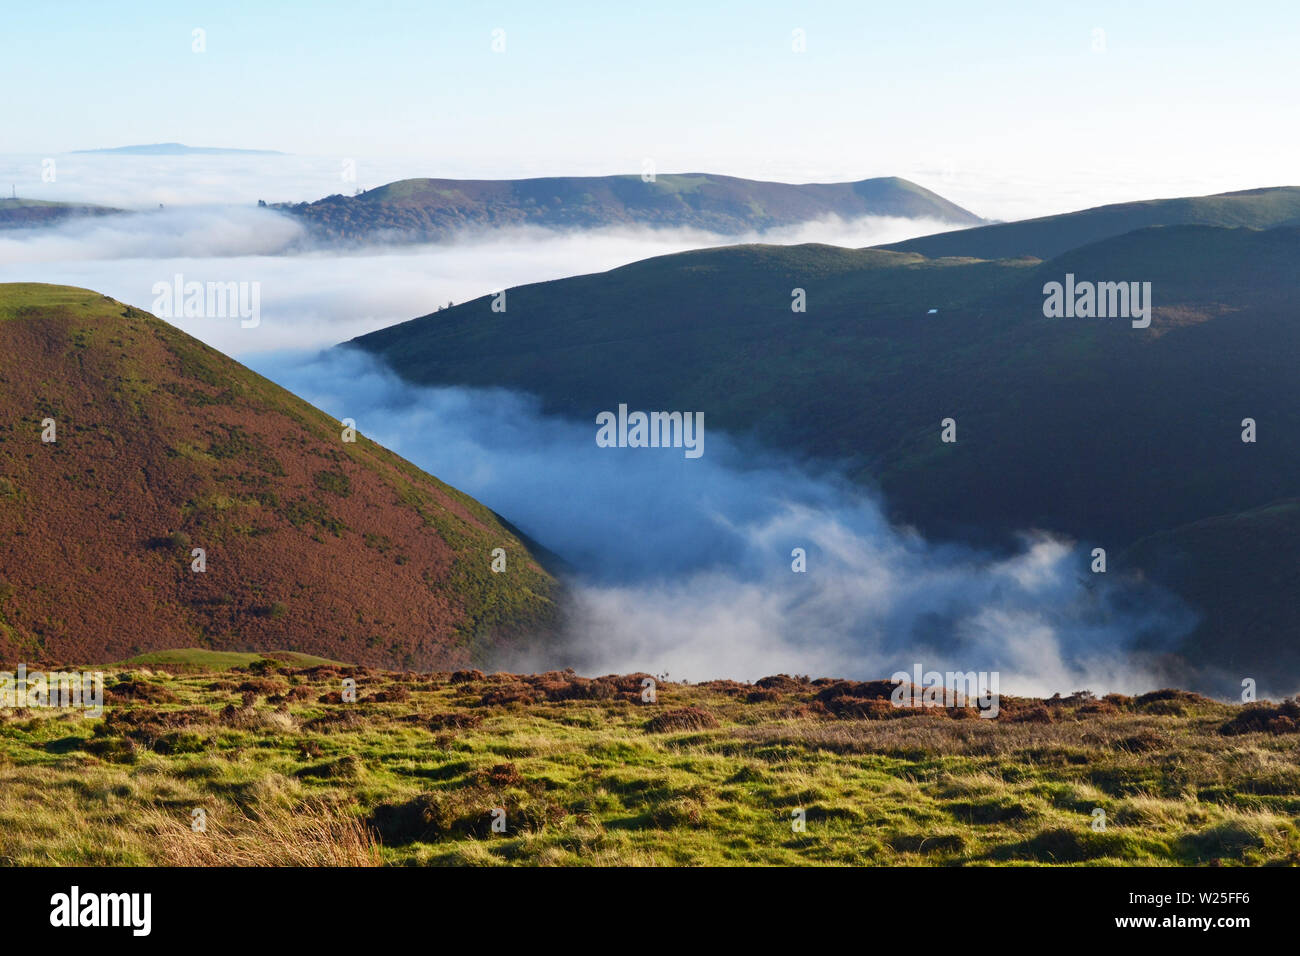 View of the Shropshire Hills from the Long Mynd, with clouds in the valley. Above the clouds, looking down. UK Stock Photo